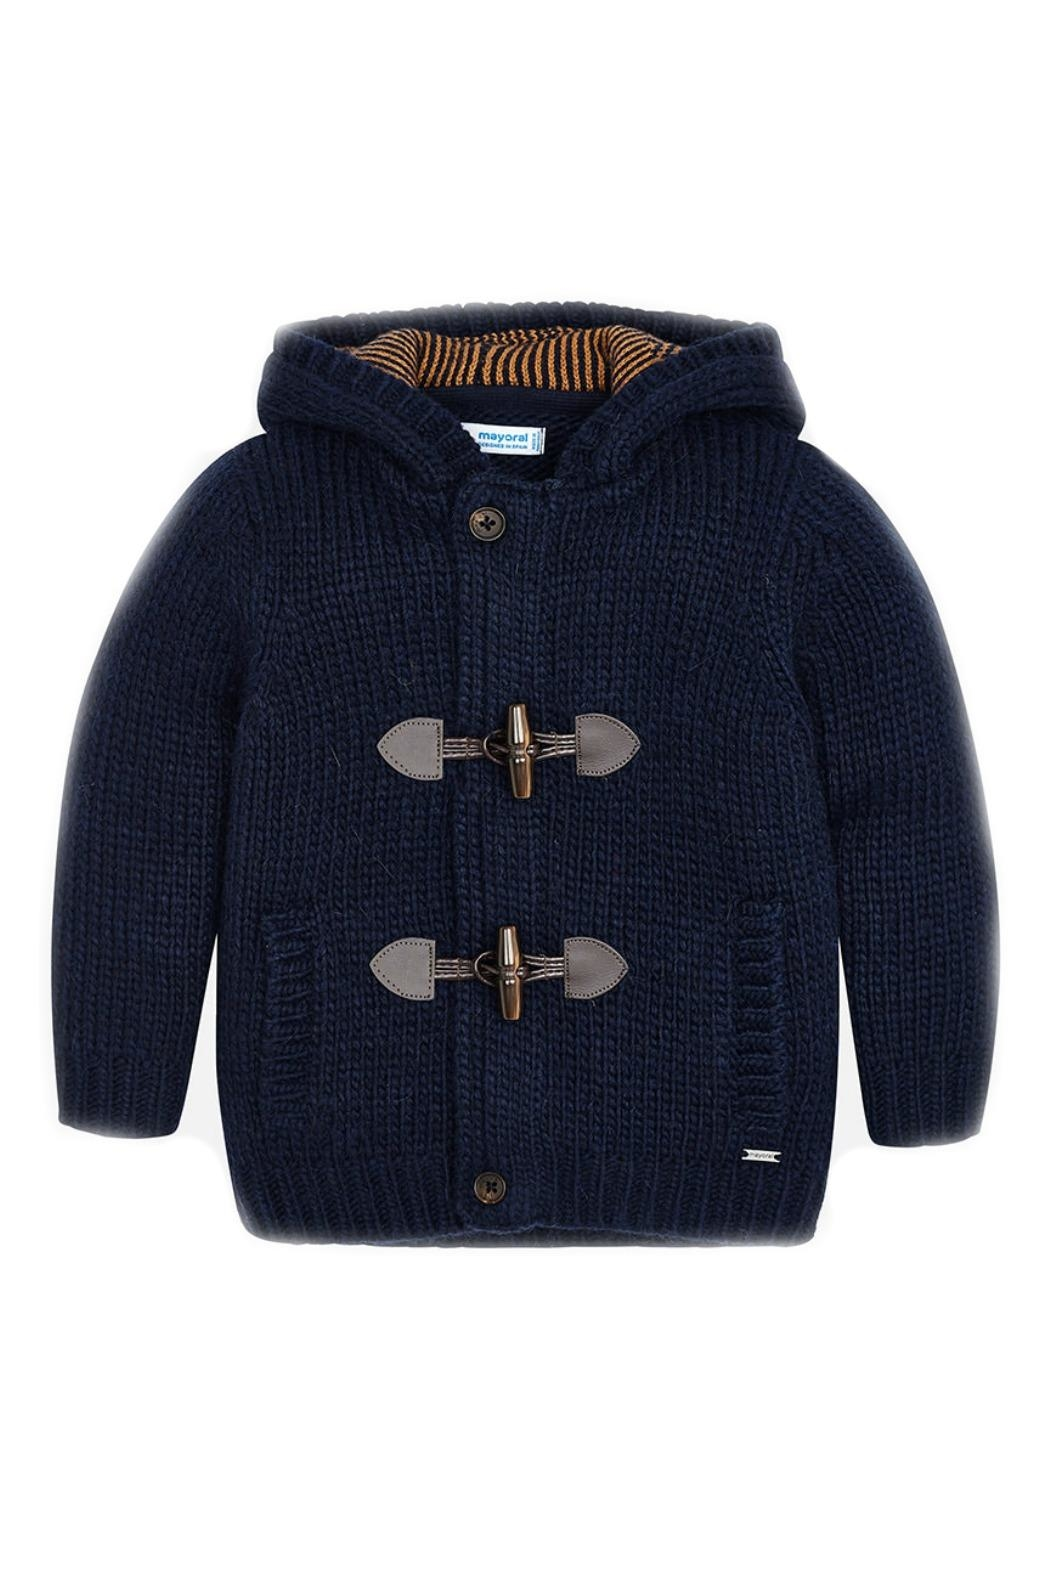 Mayoral Boys-Navy-Knit-Toggle-Cardigan-With-Hood - Main Image